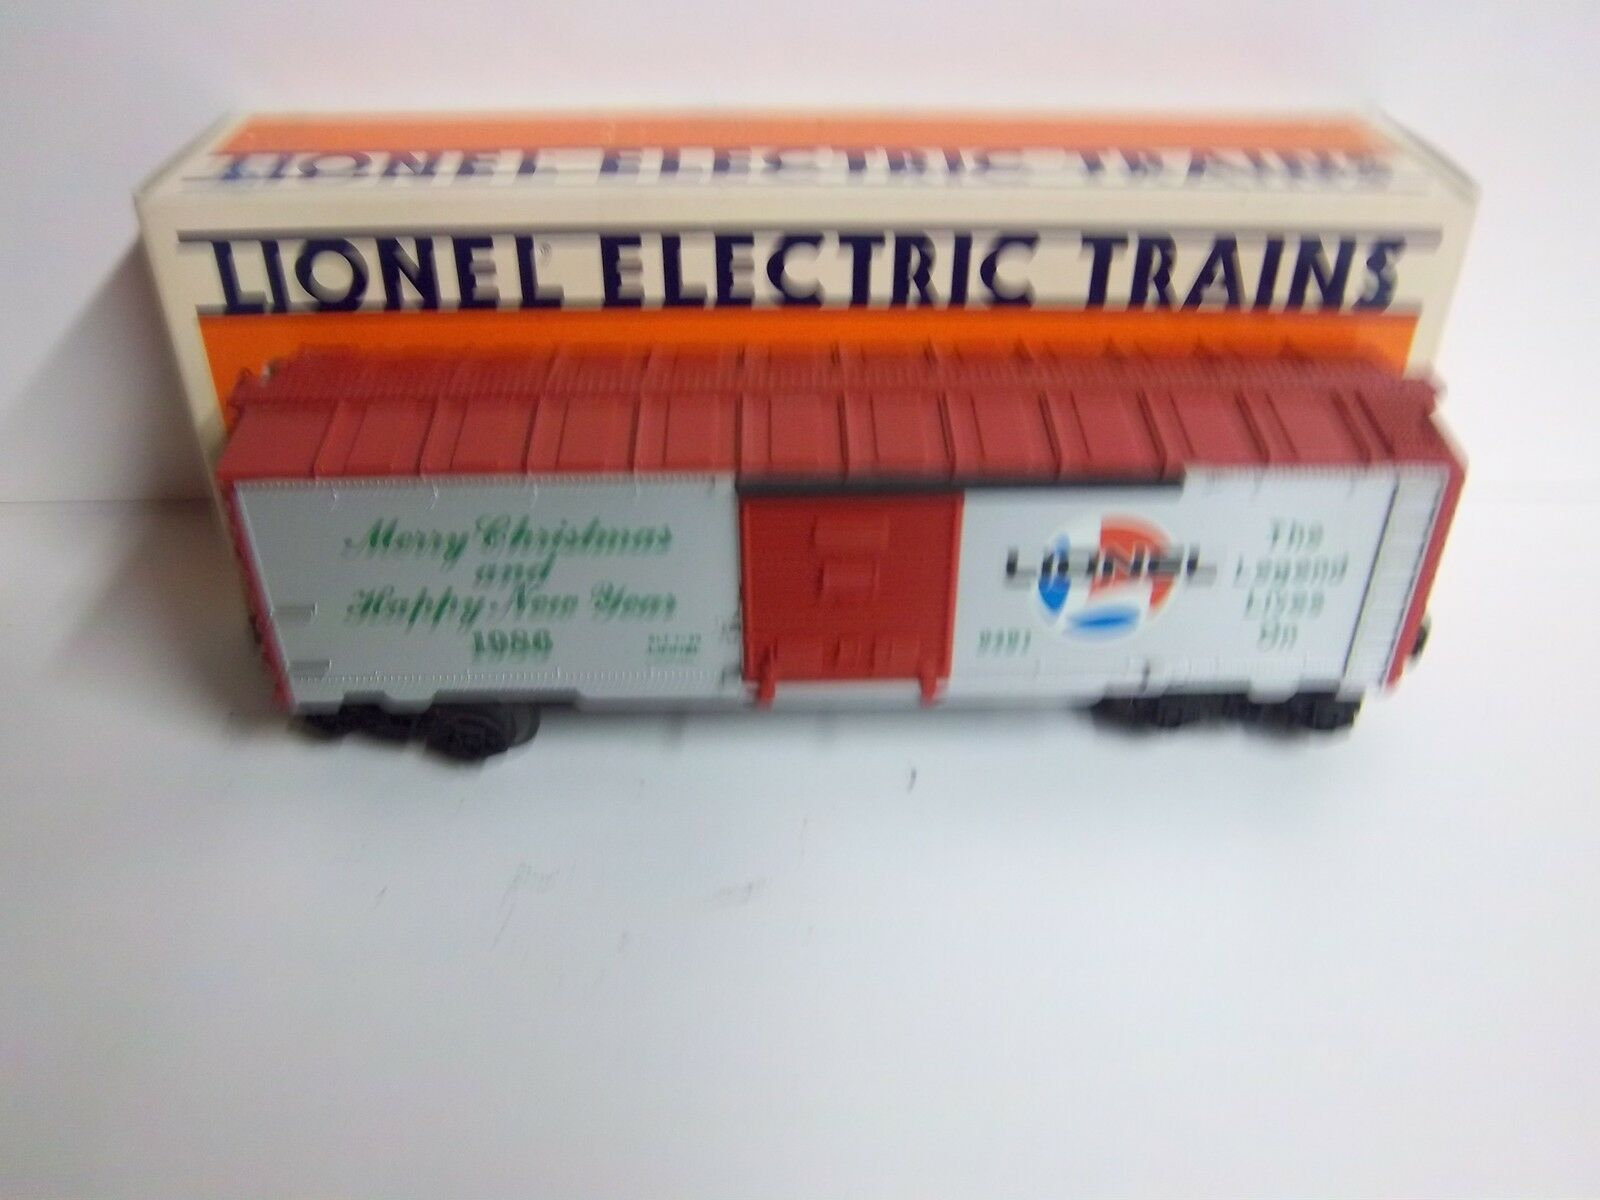 LIONEL 1986 6-9491 CHRISTMAS BOXCAR INCLUDING ORIGINAL BOX